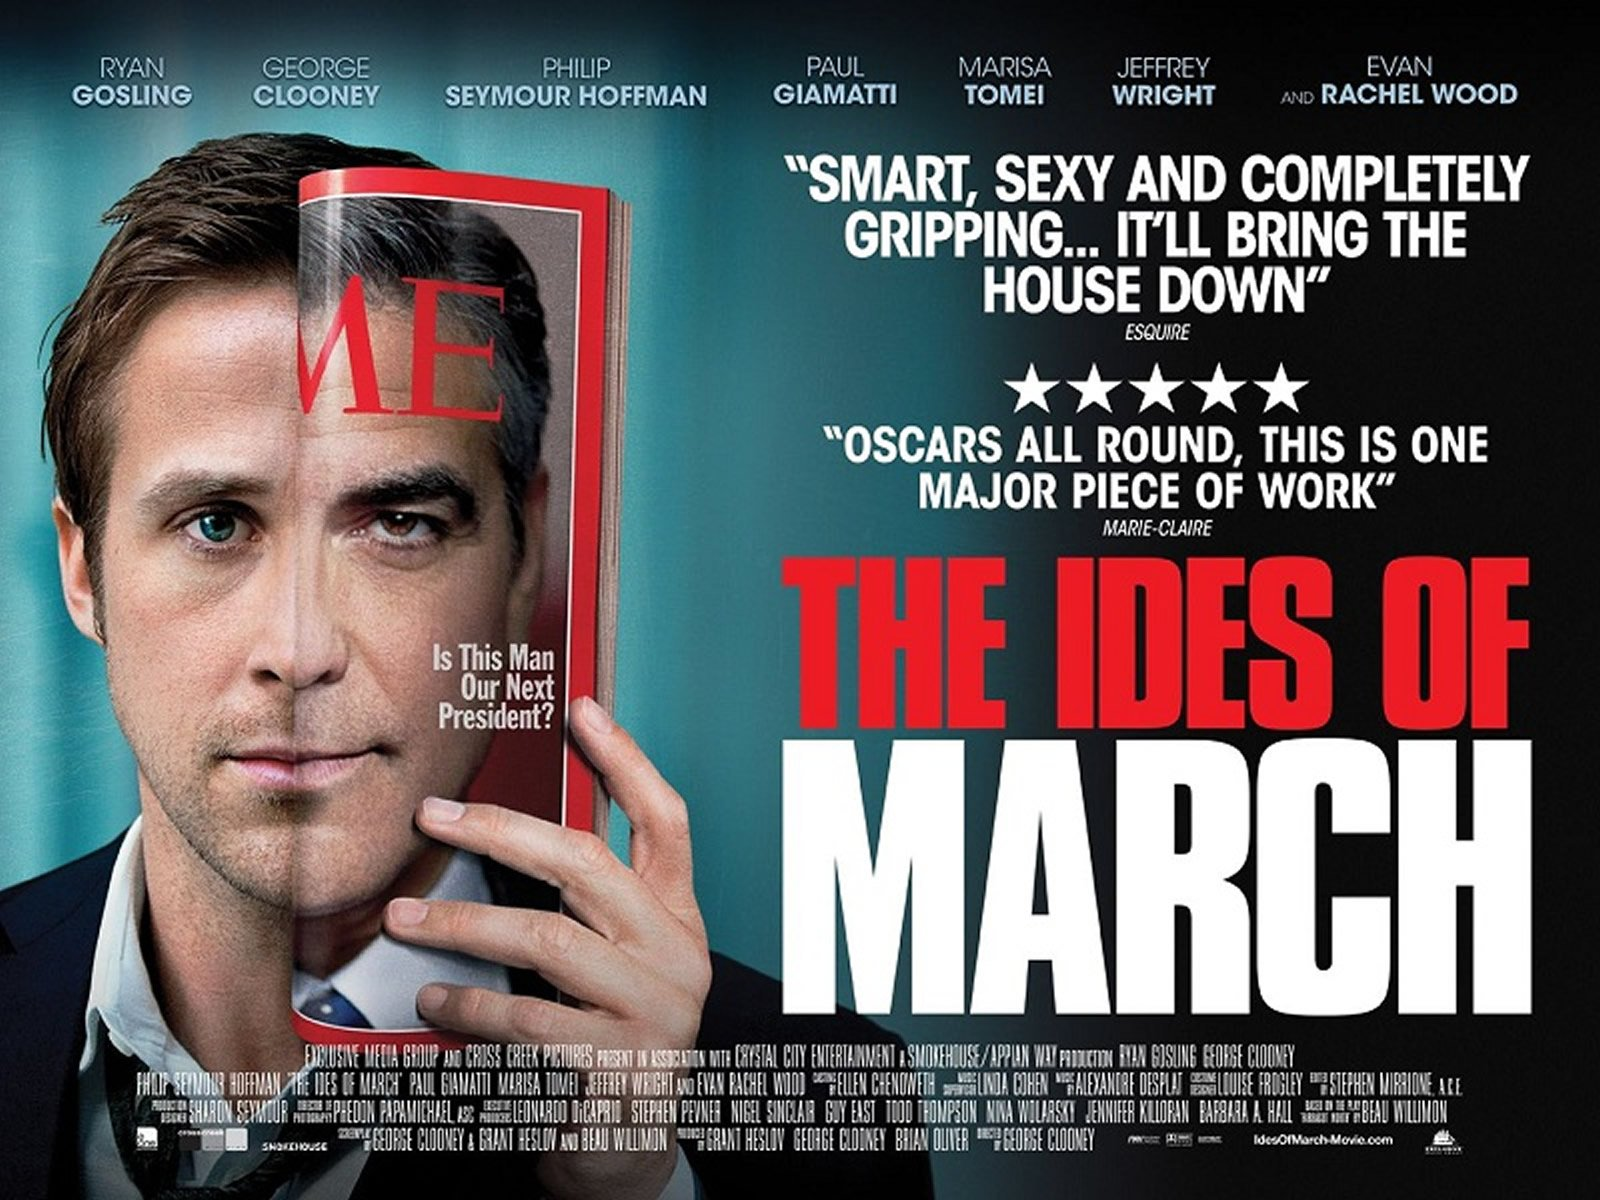 Ryan Gosling and George Clooney star in 'The Ides of March'